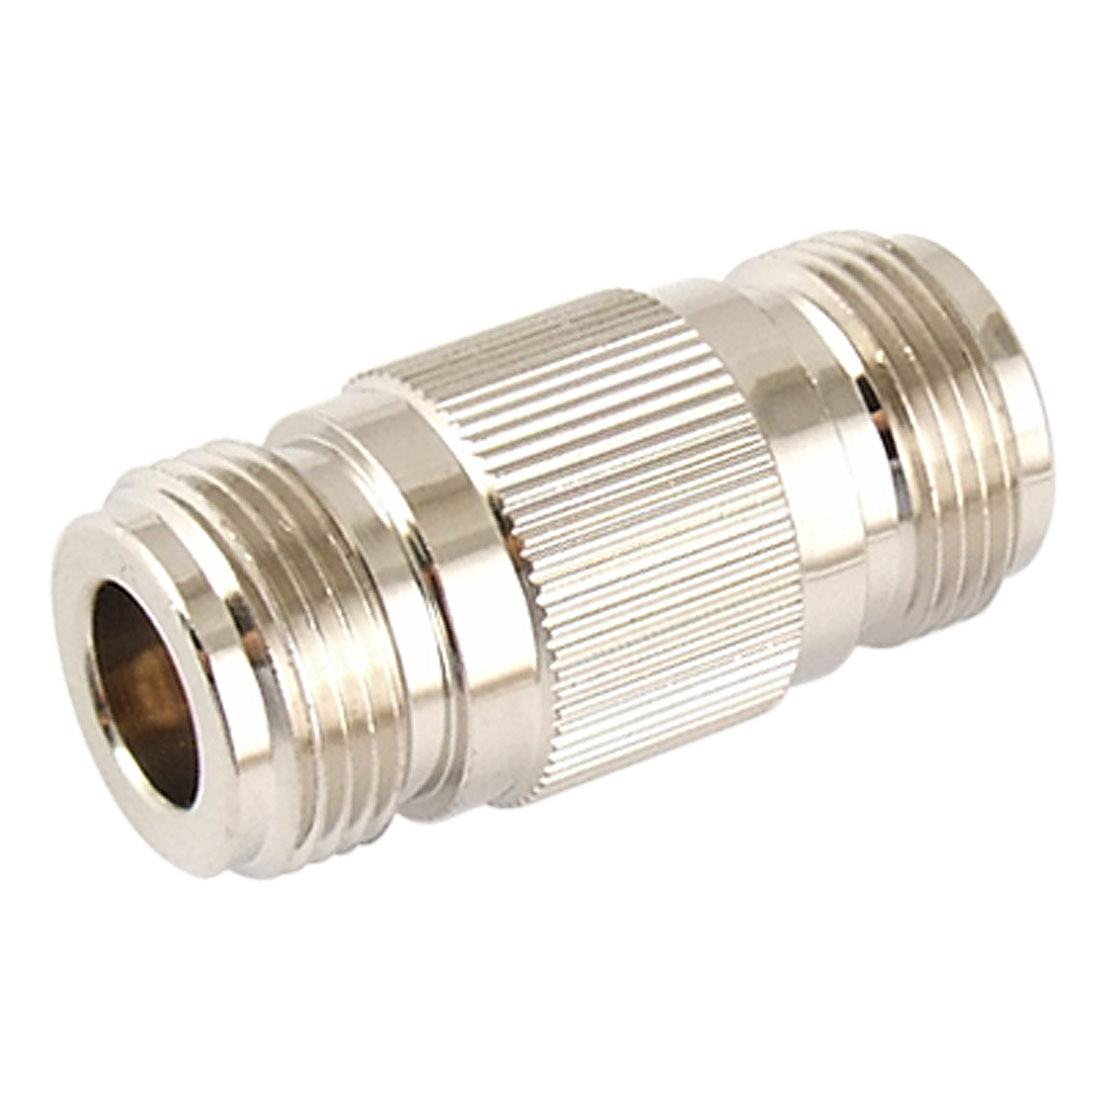 N Female to N Female RF Coax Connector Adapter Couplers